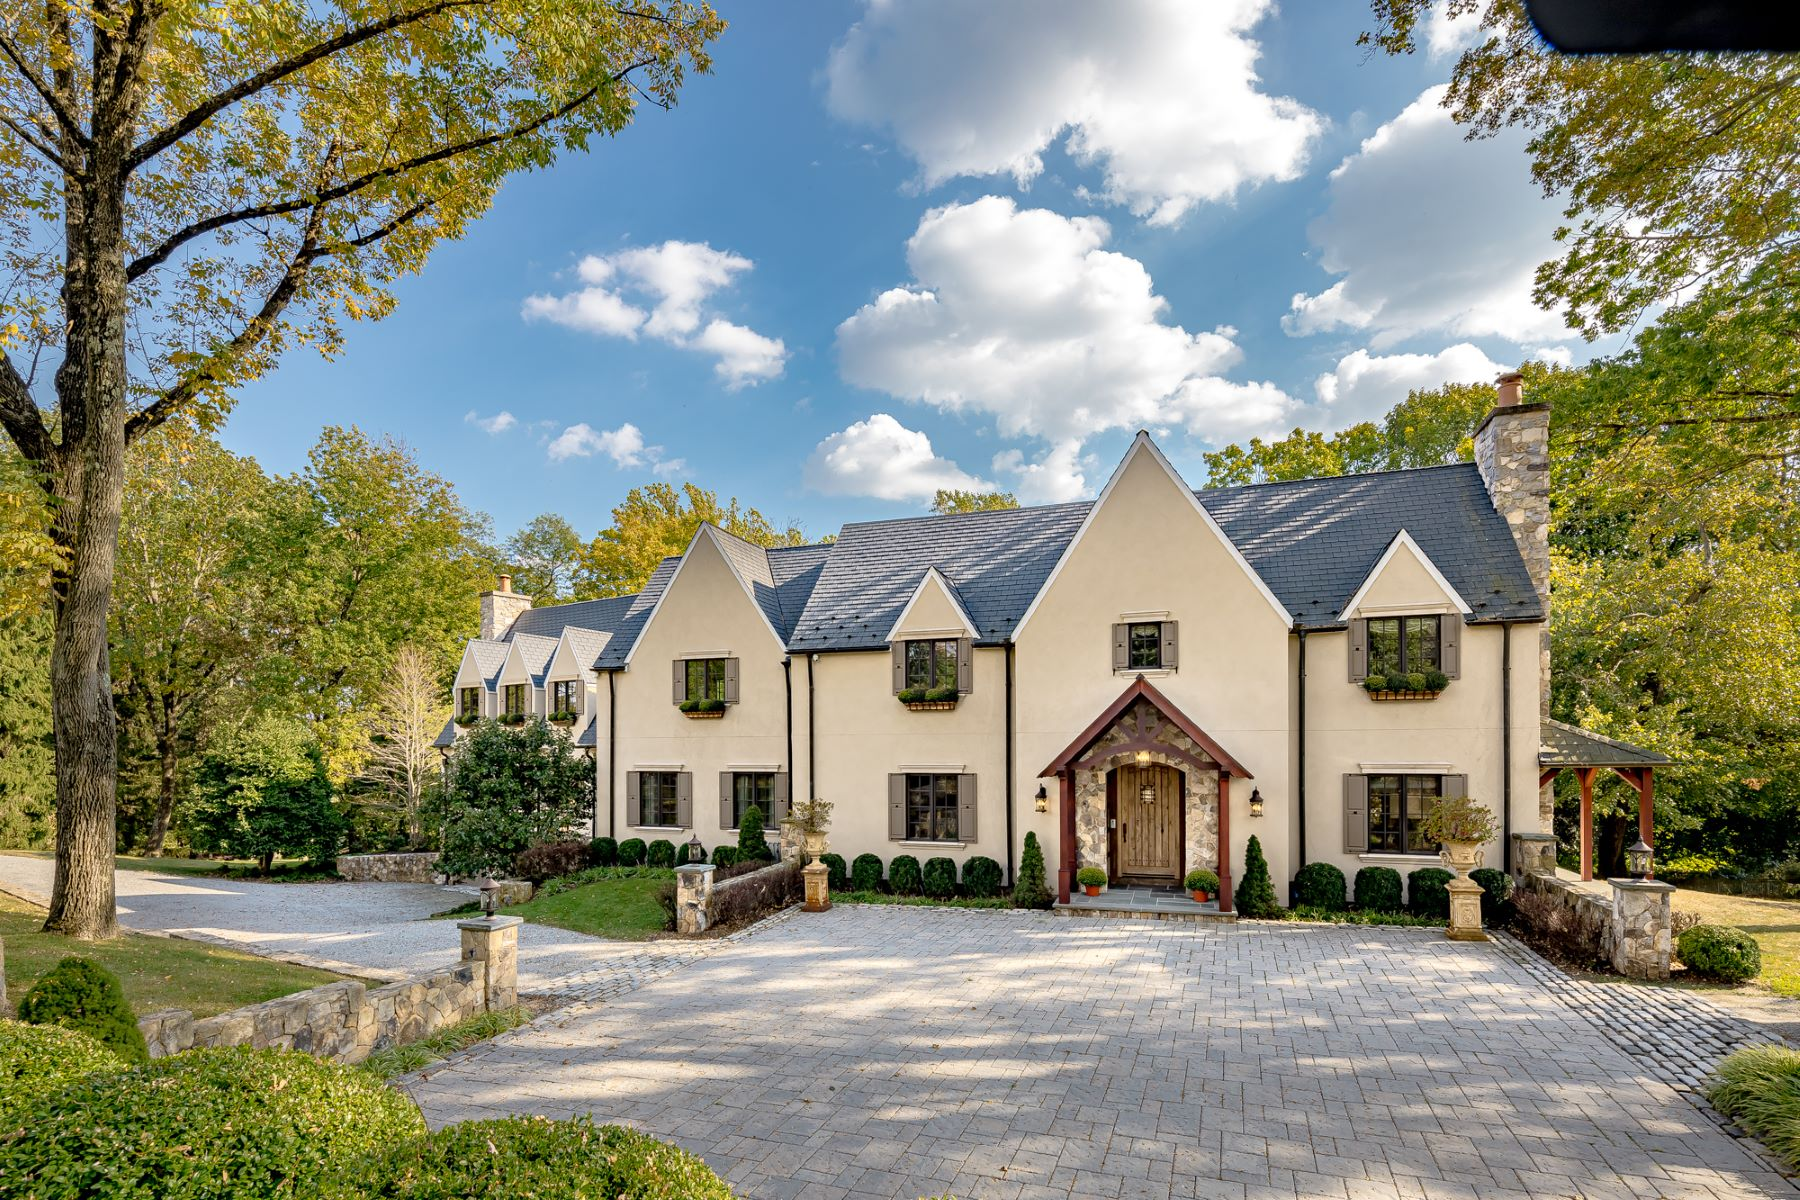 Single Family Homes for Active at French Custom Manor 2 Crownview Lane Bernardsville, New Jersey 07924 United States